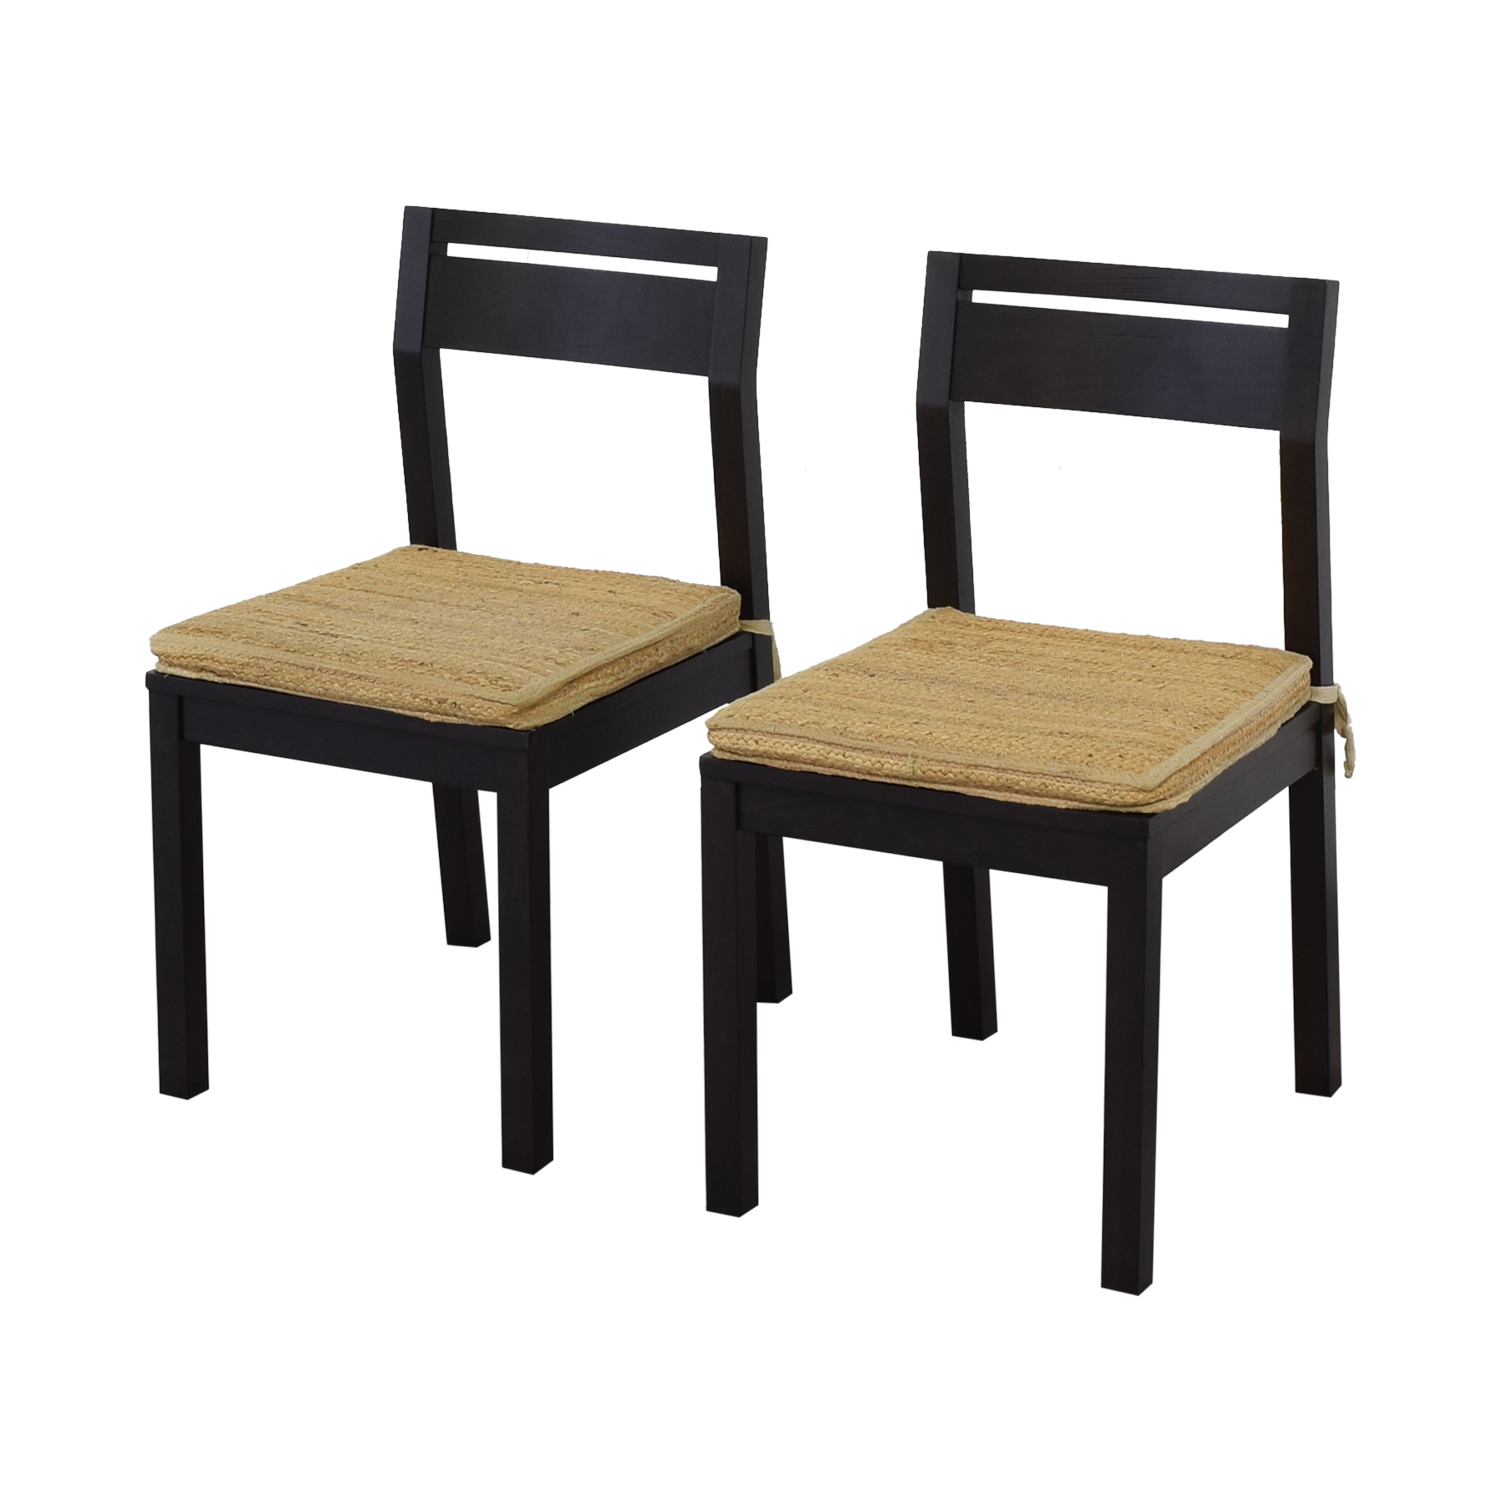 West Elm West Elm Dining Chairs with Woven Cushions dark brown & tan